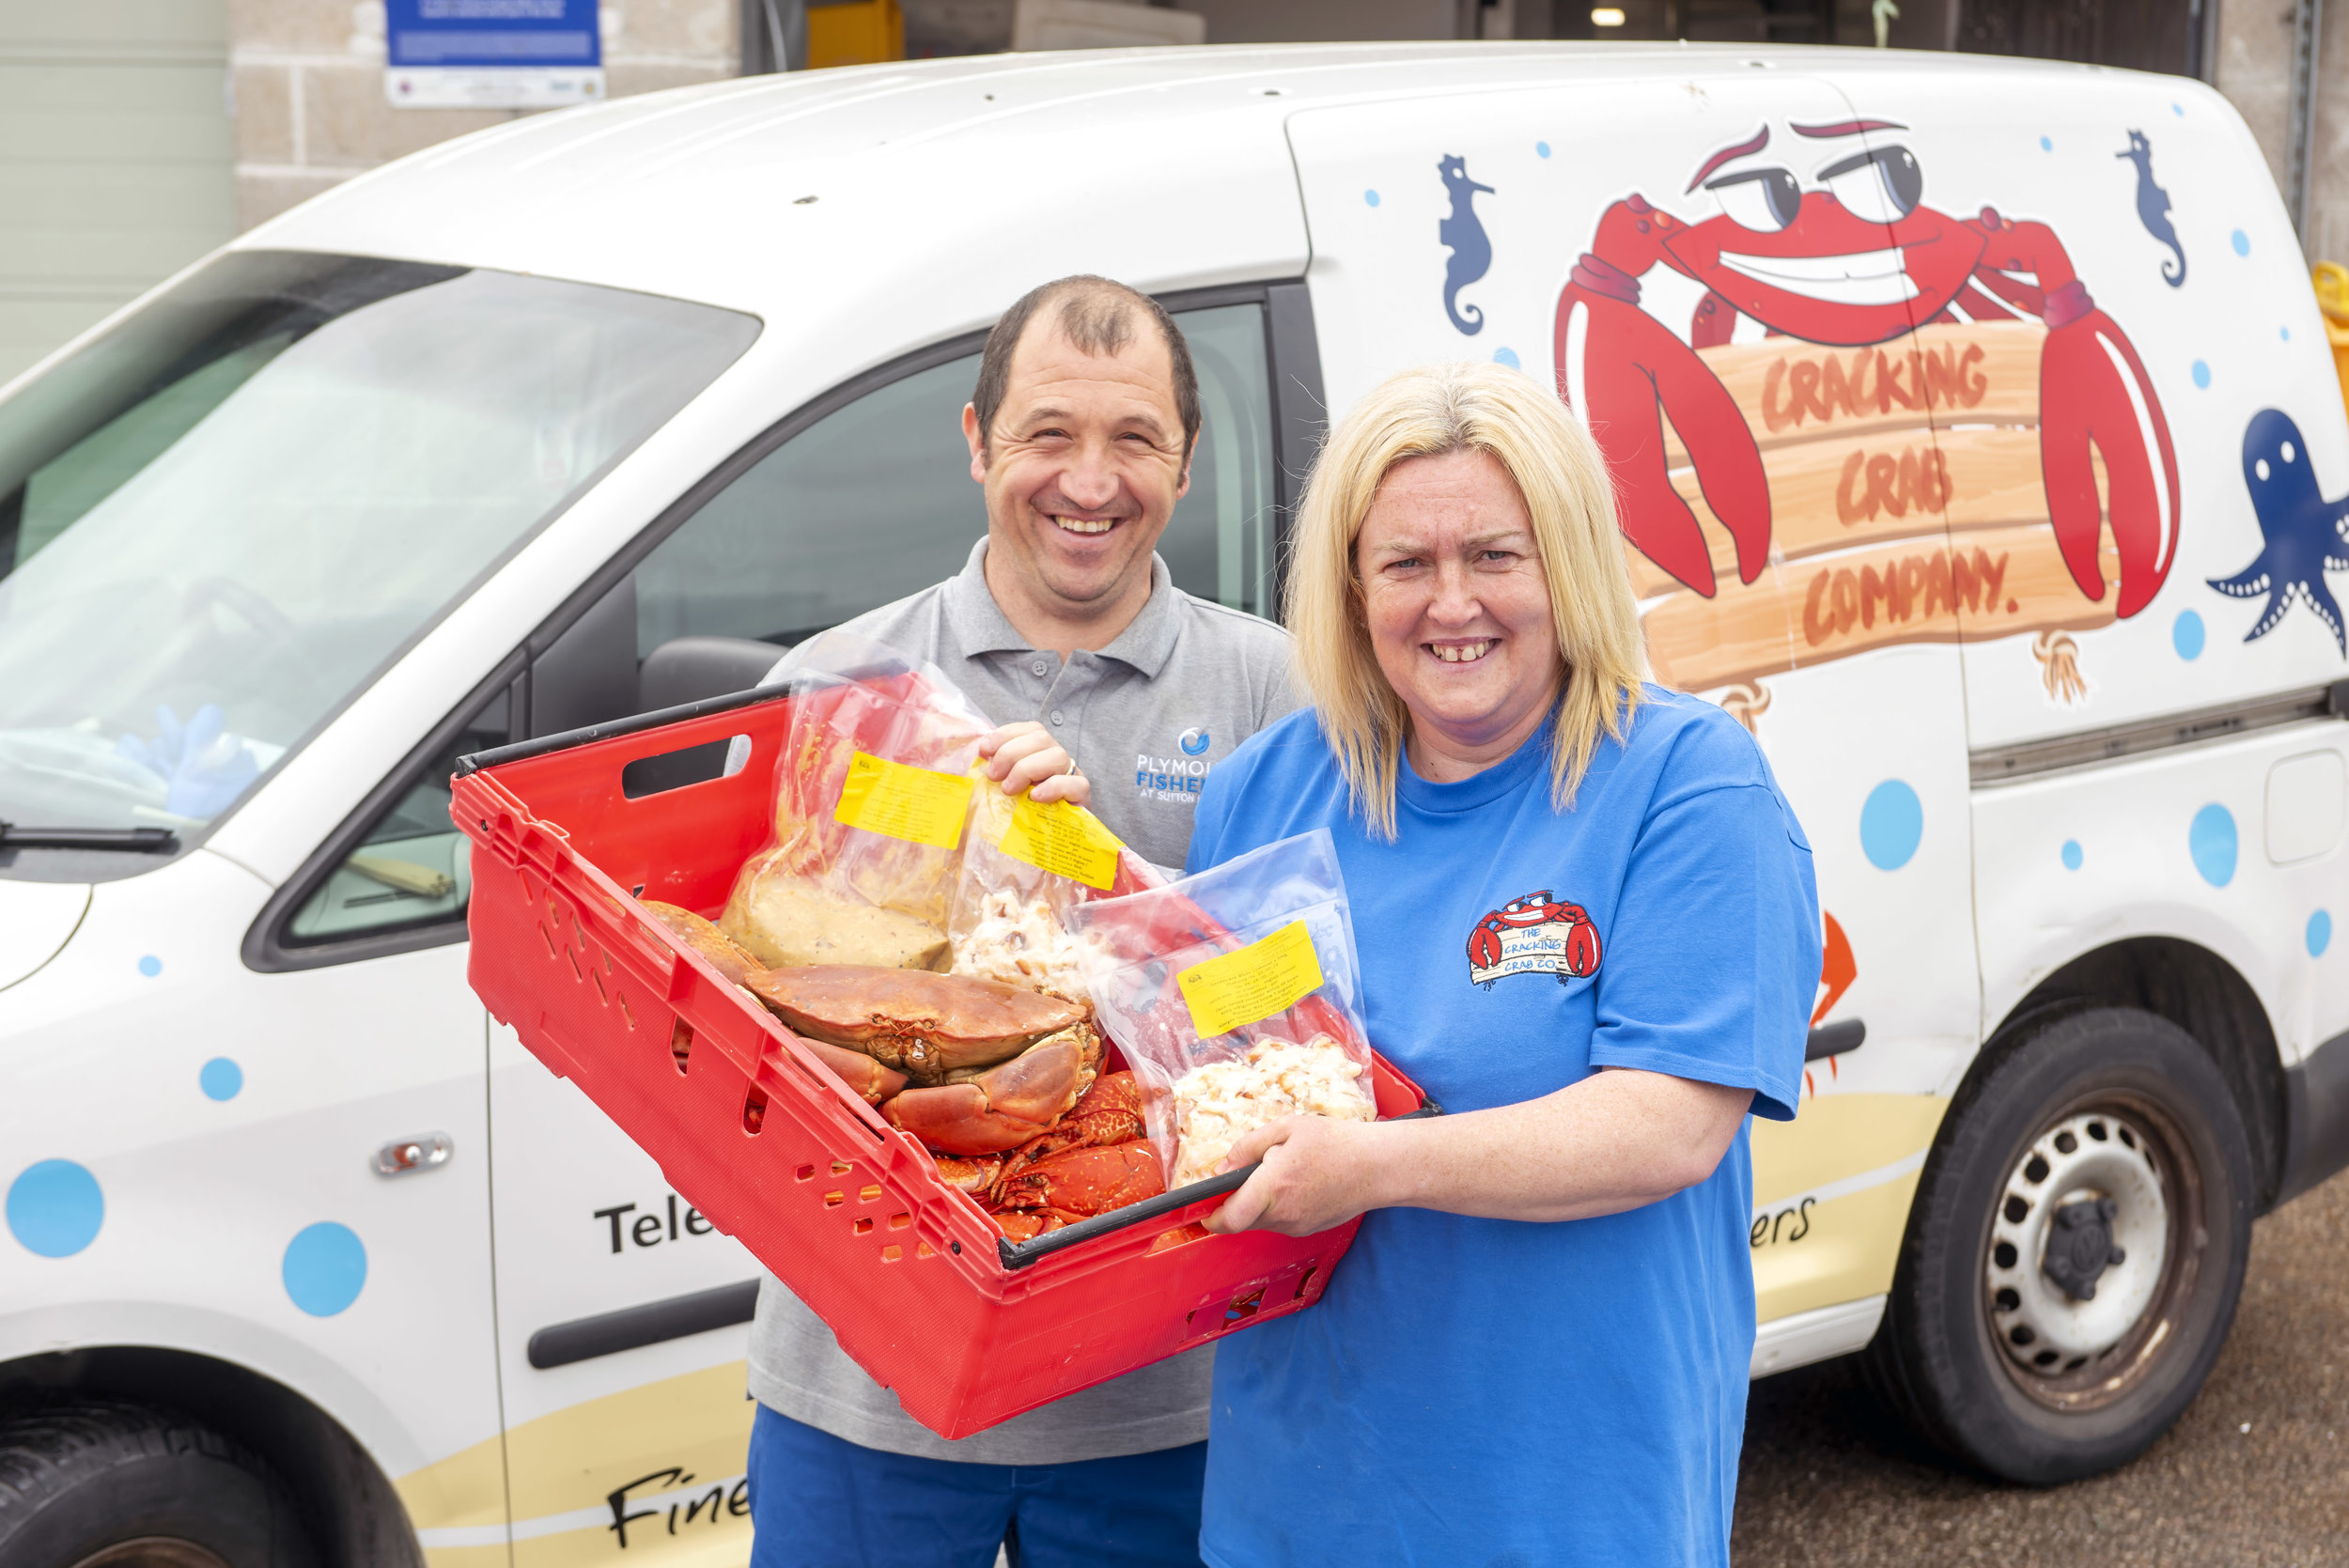 Nick Eggar, Manager of Plymouth Fisheries, and Claire Tapper, owner of The Cracking Crab Company.